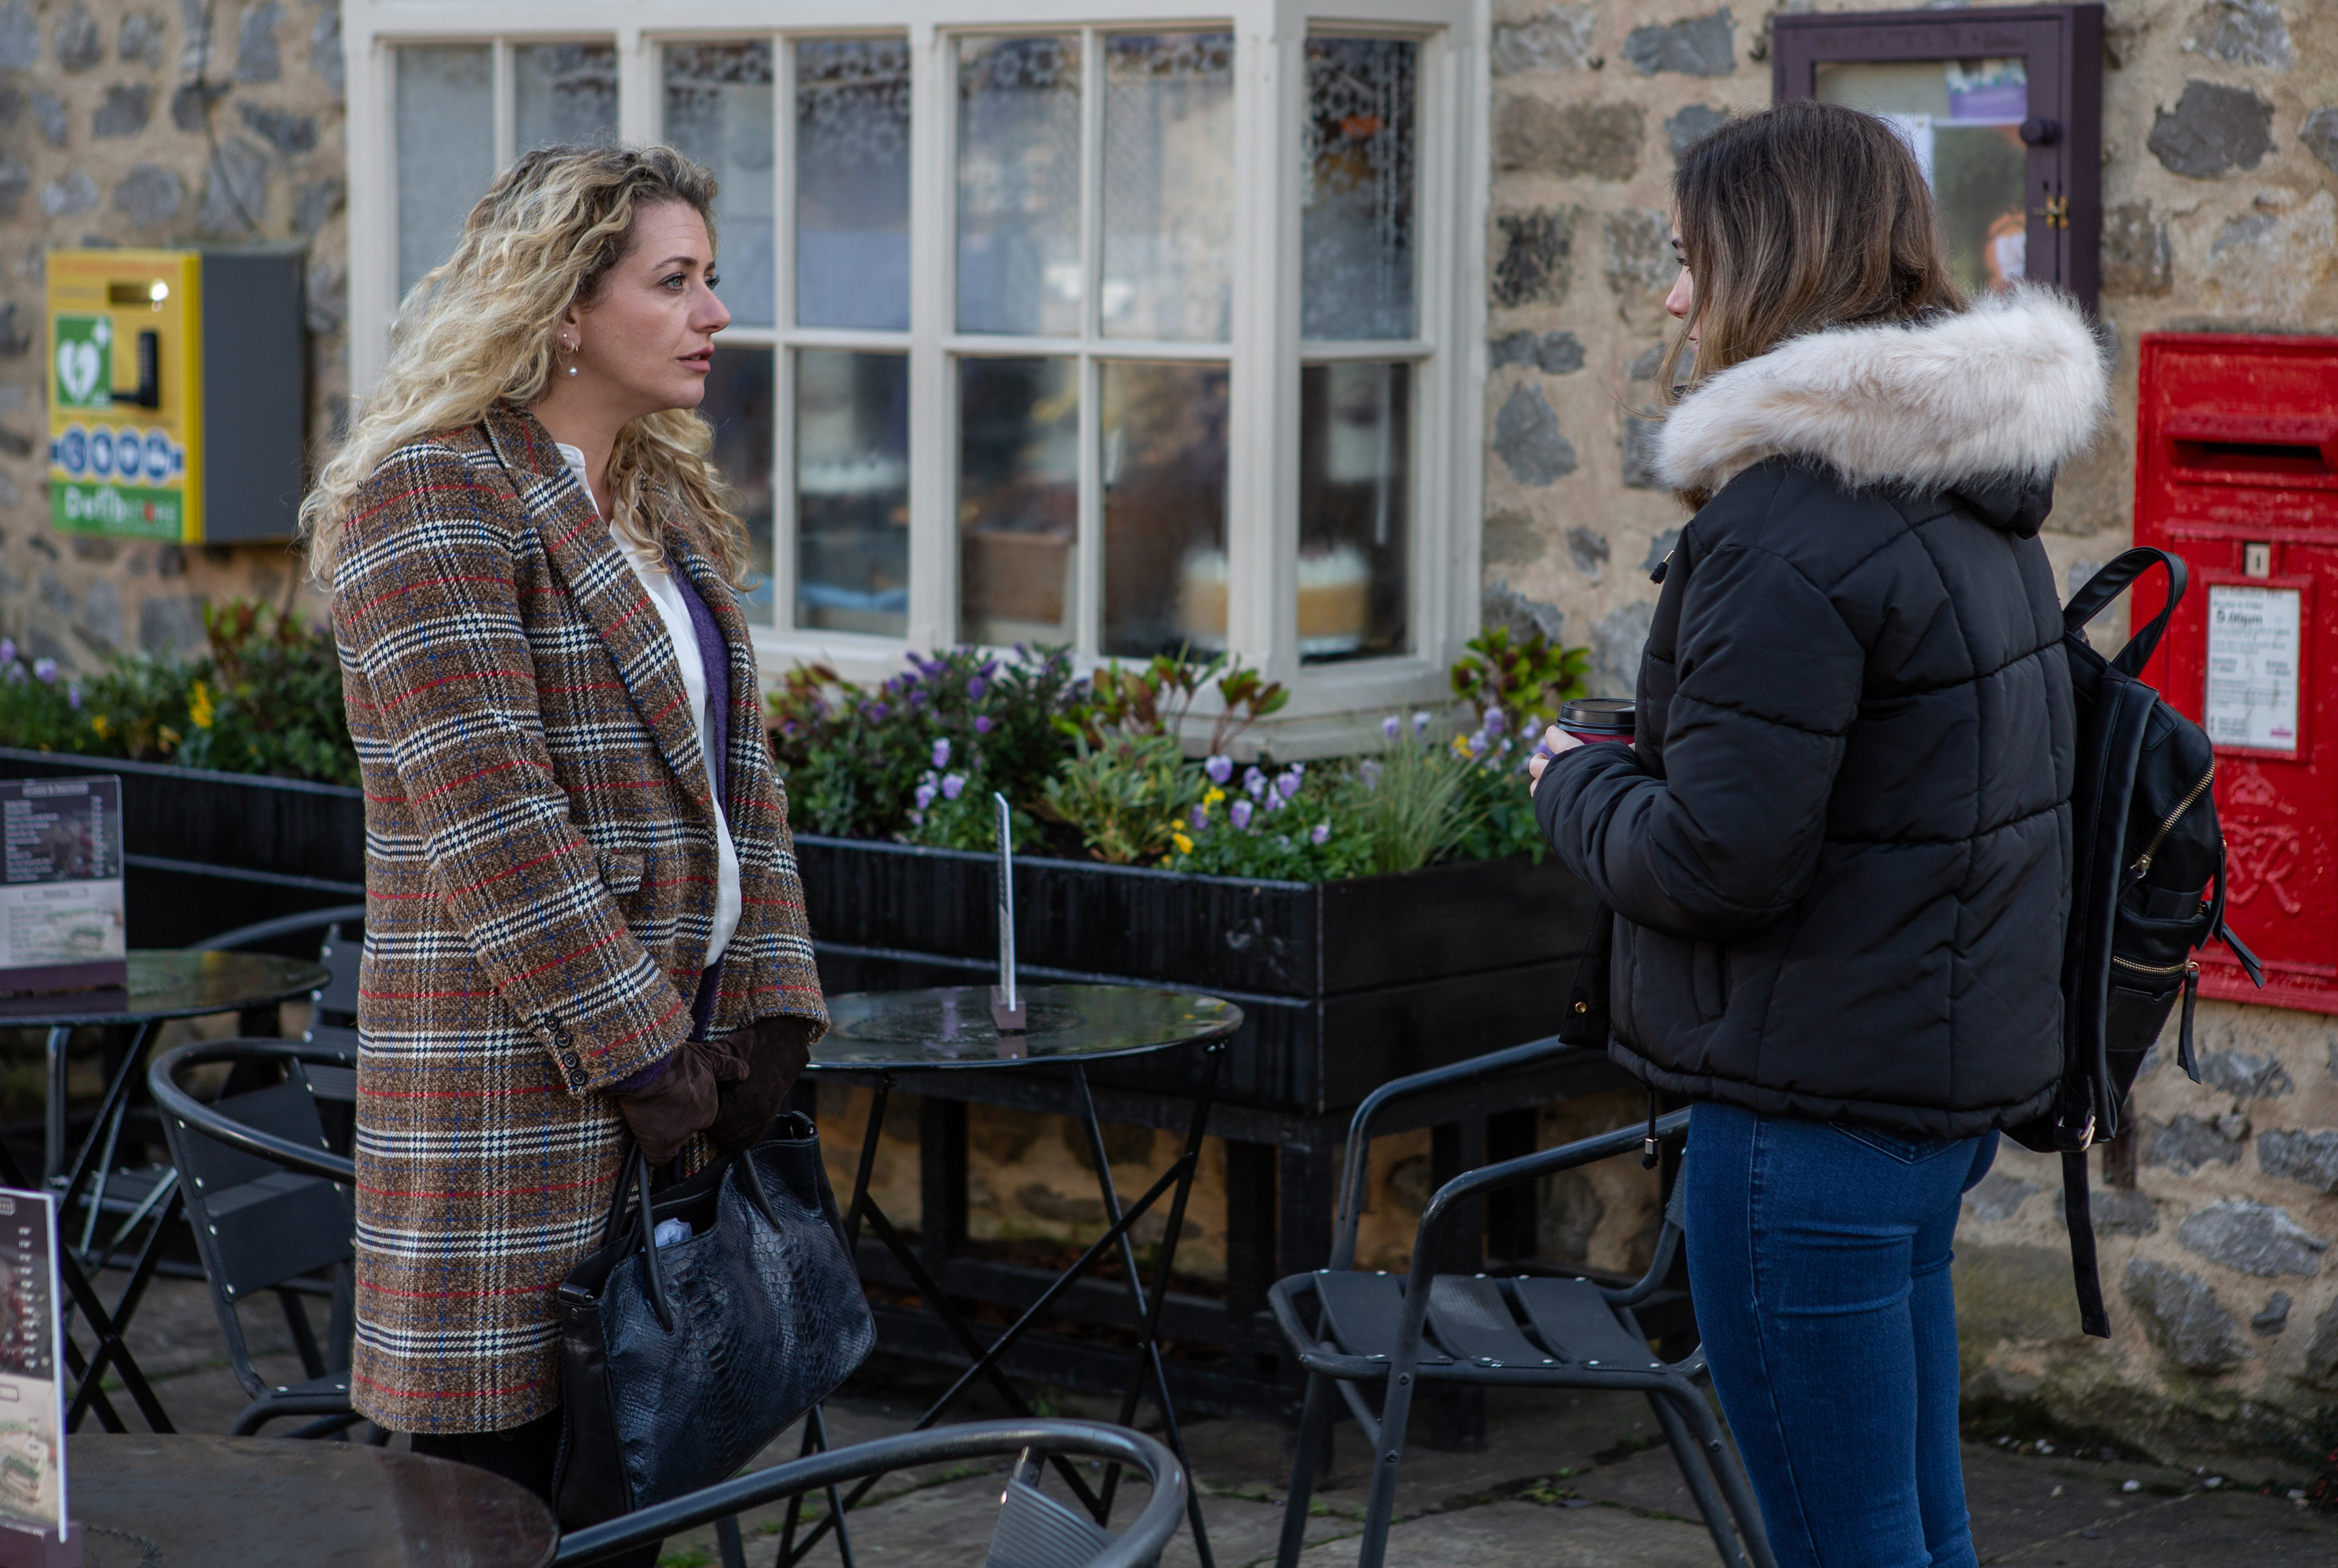 Emmerdale spoilers: Maya Stepney meddles with Liv as she hopes to win Jacob Gallagher back